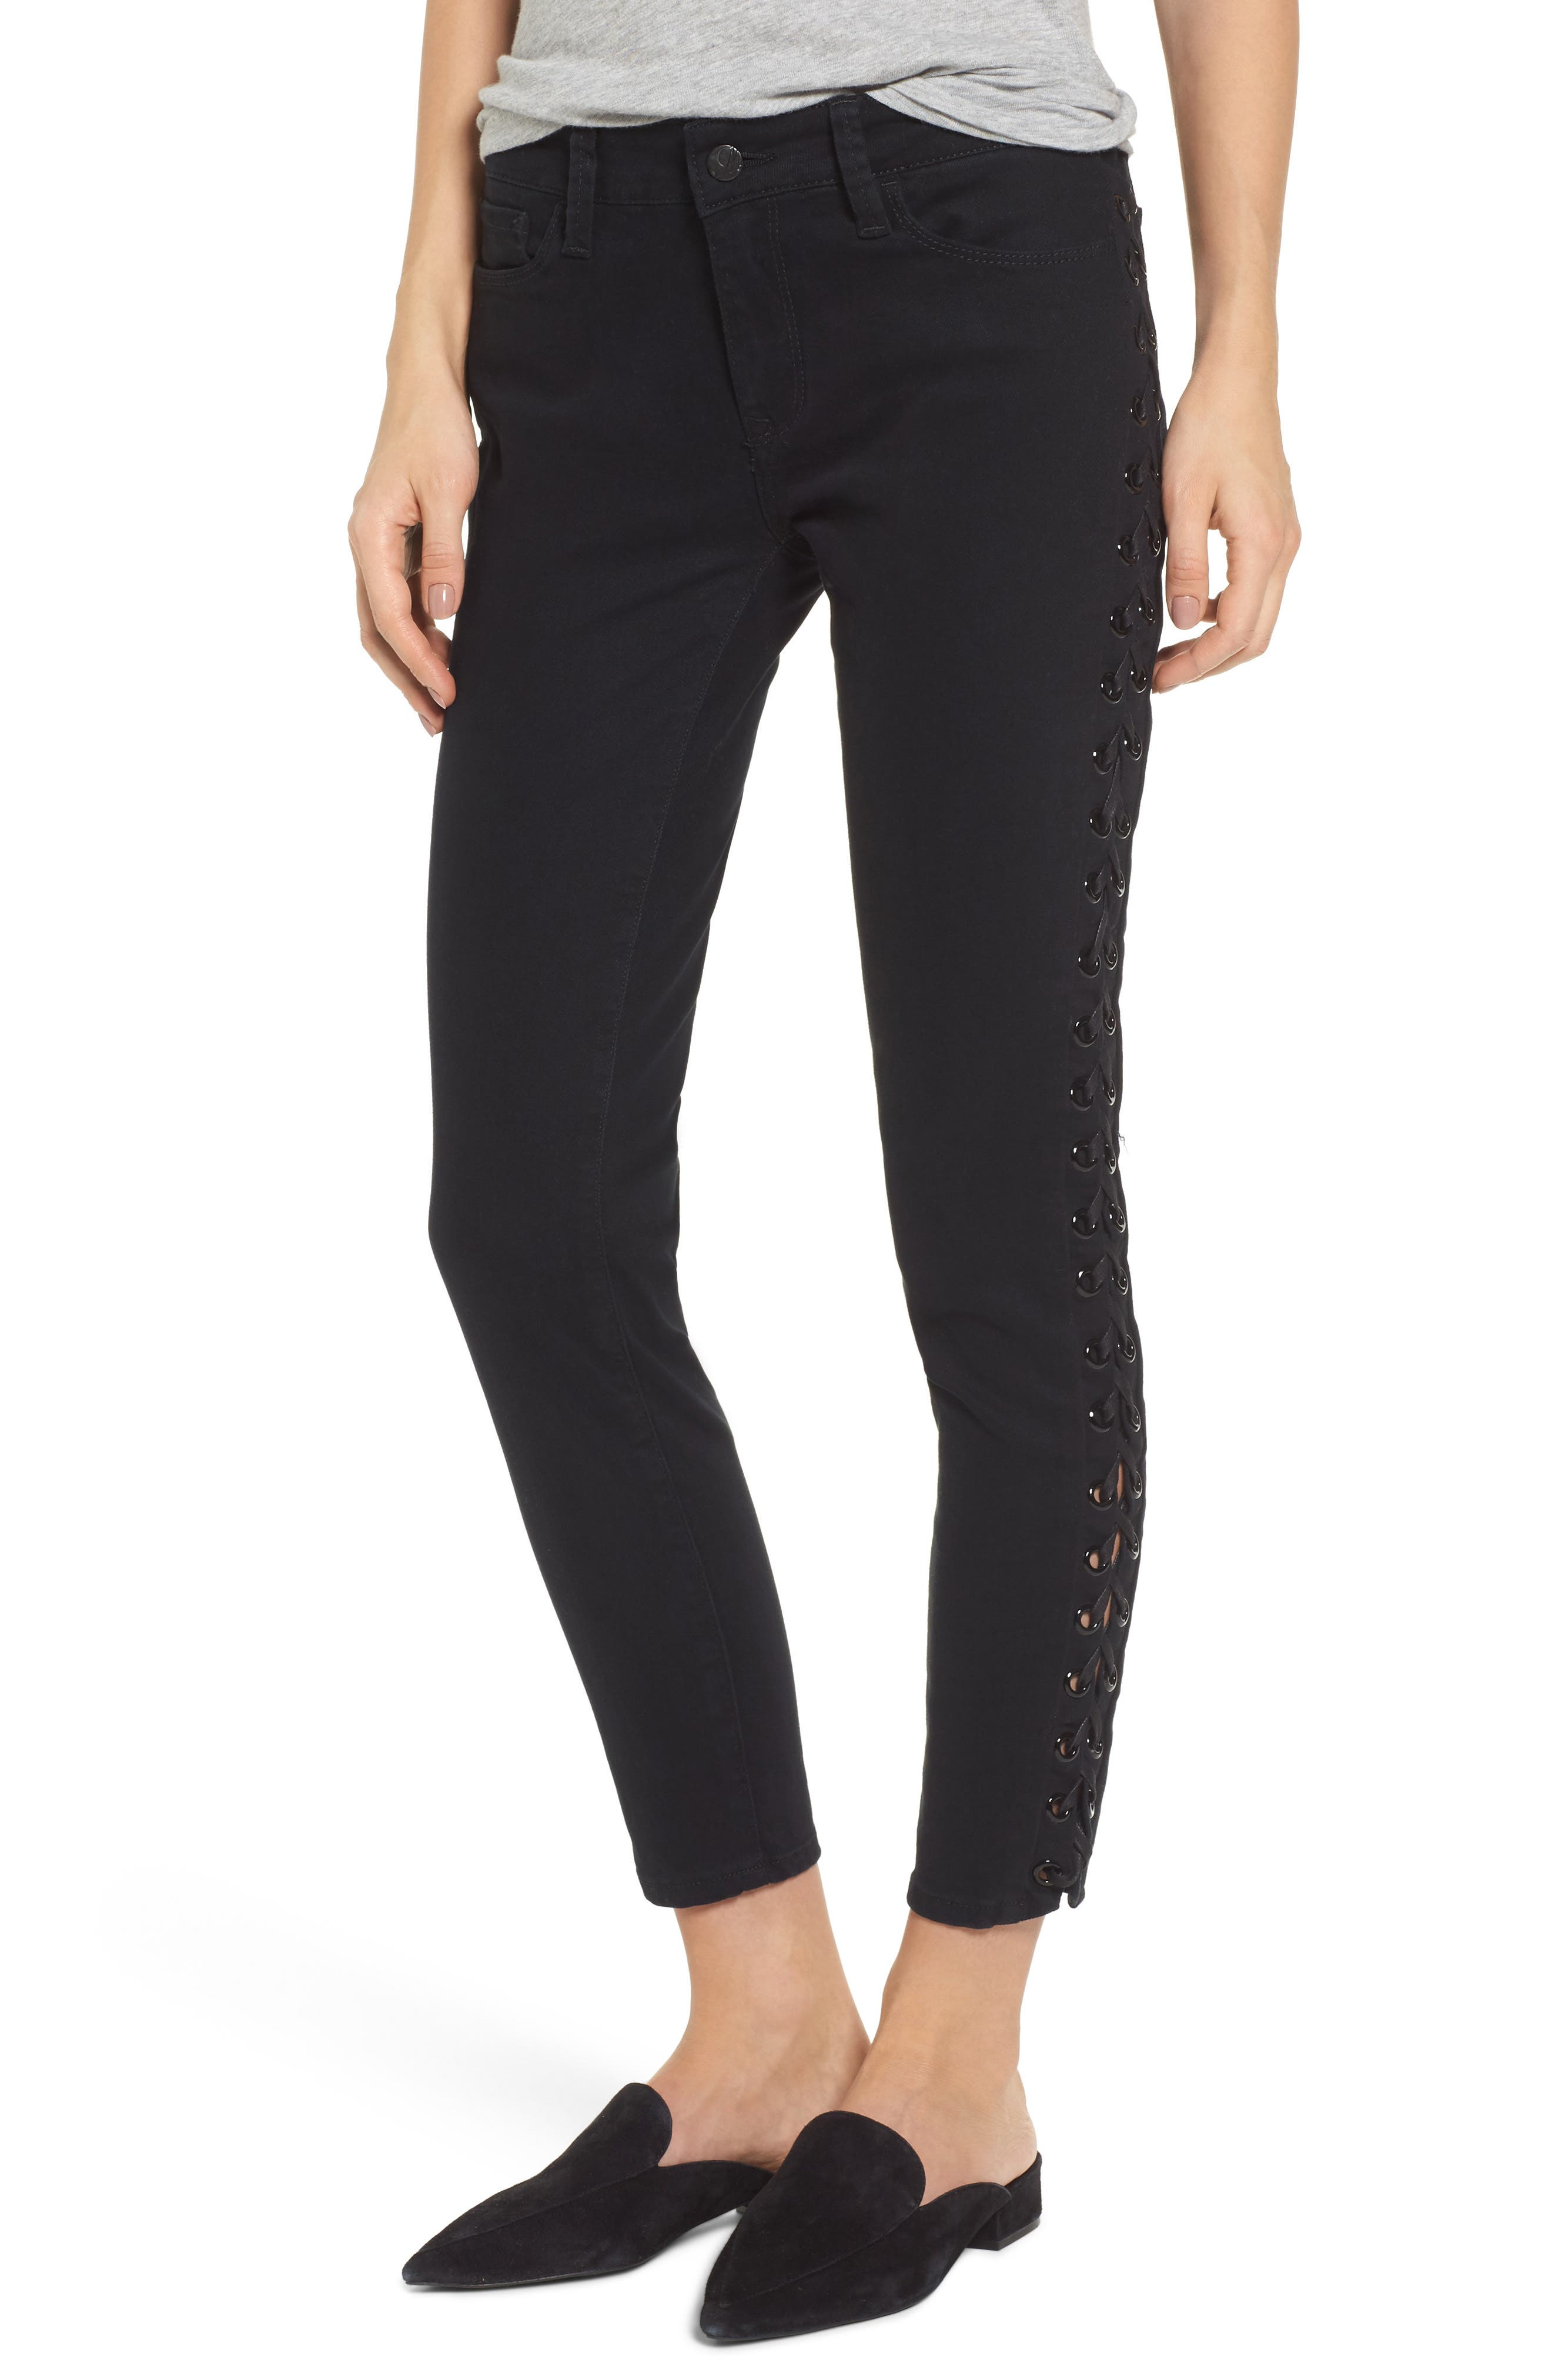 Adriana Lace-Up Super Skinny Jeans,                             Main thumbnail 1, color,                             001